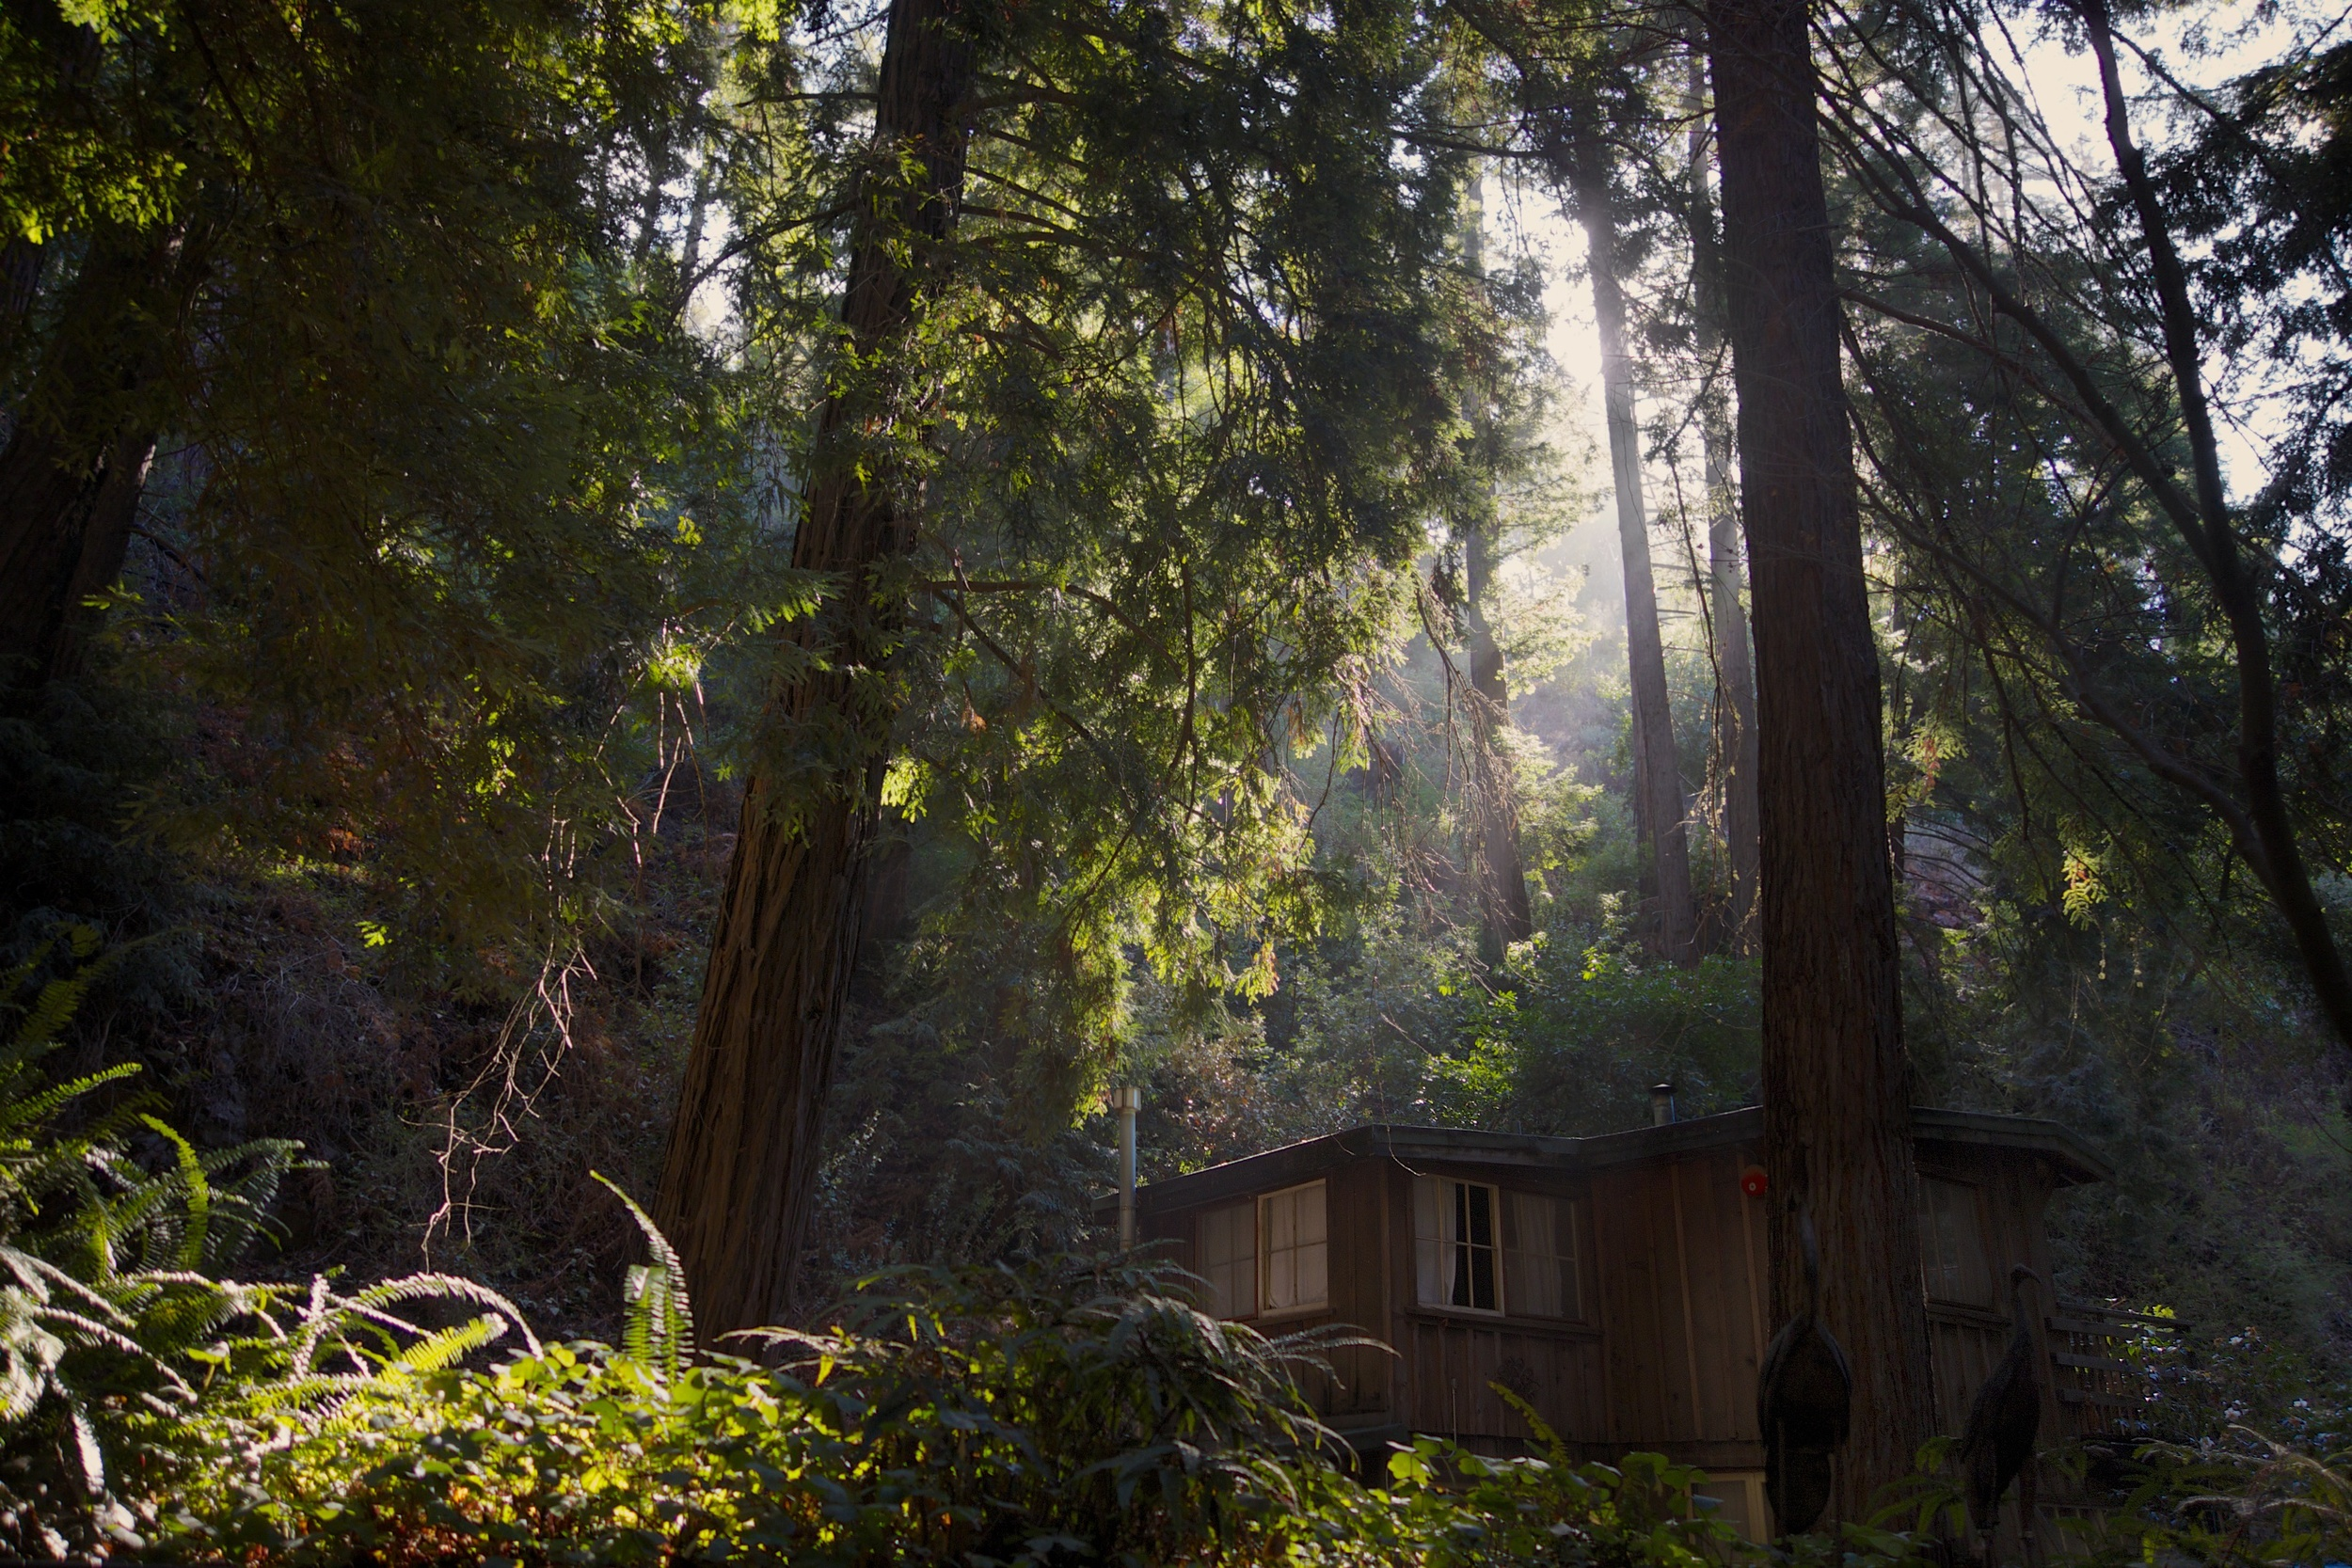 → Our view from the deck of our tiny + perfect private cabin, Castro Canyon.